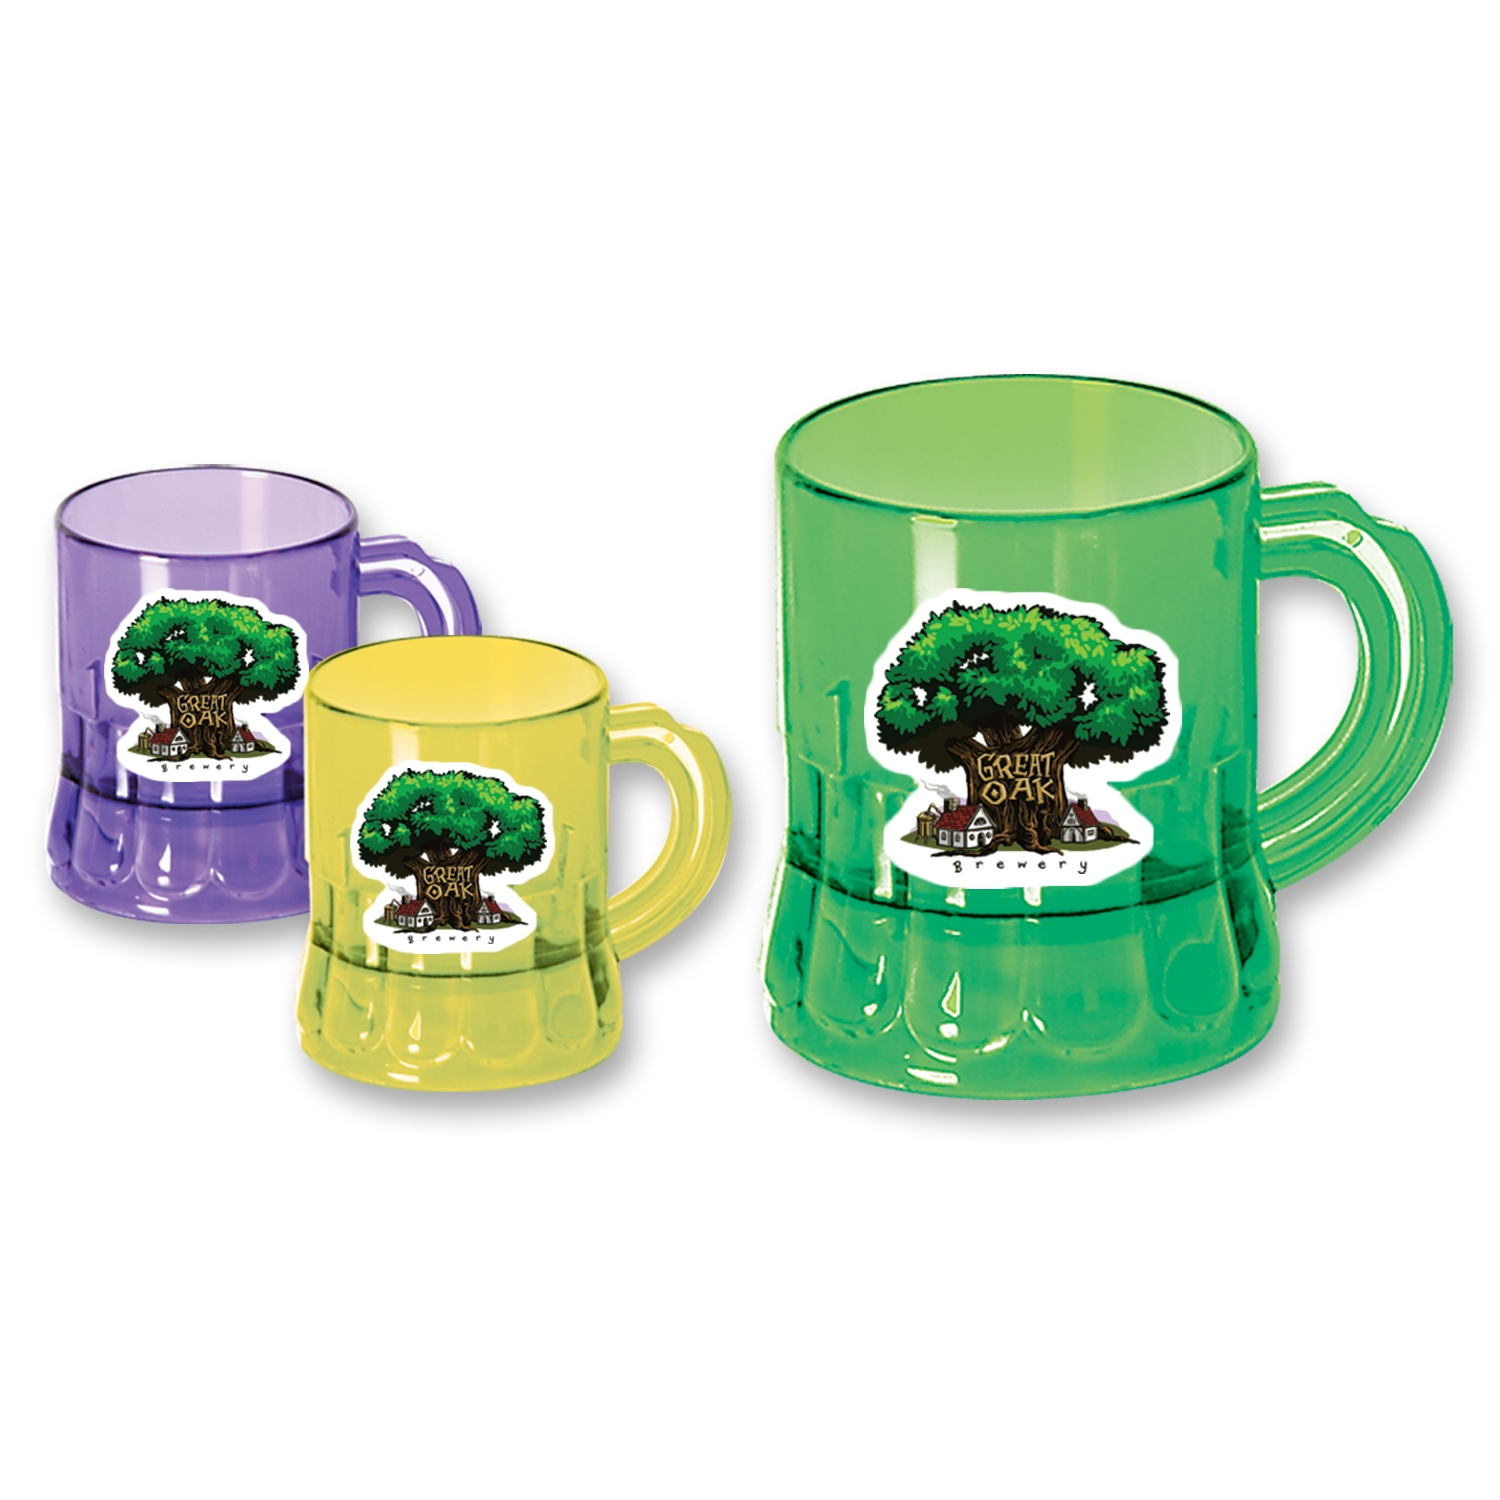 Custom Mardi Gras Mug Shot Custom Mardi Gras Mug Shot, mardi gras, party favor, mug, shot, custom, wholesale, inexpensive, bulk